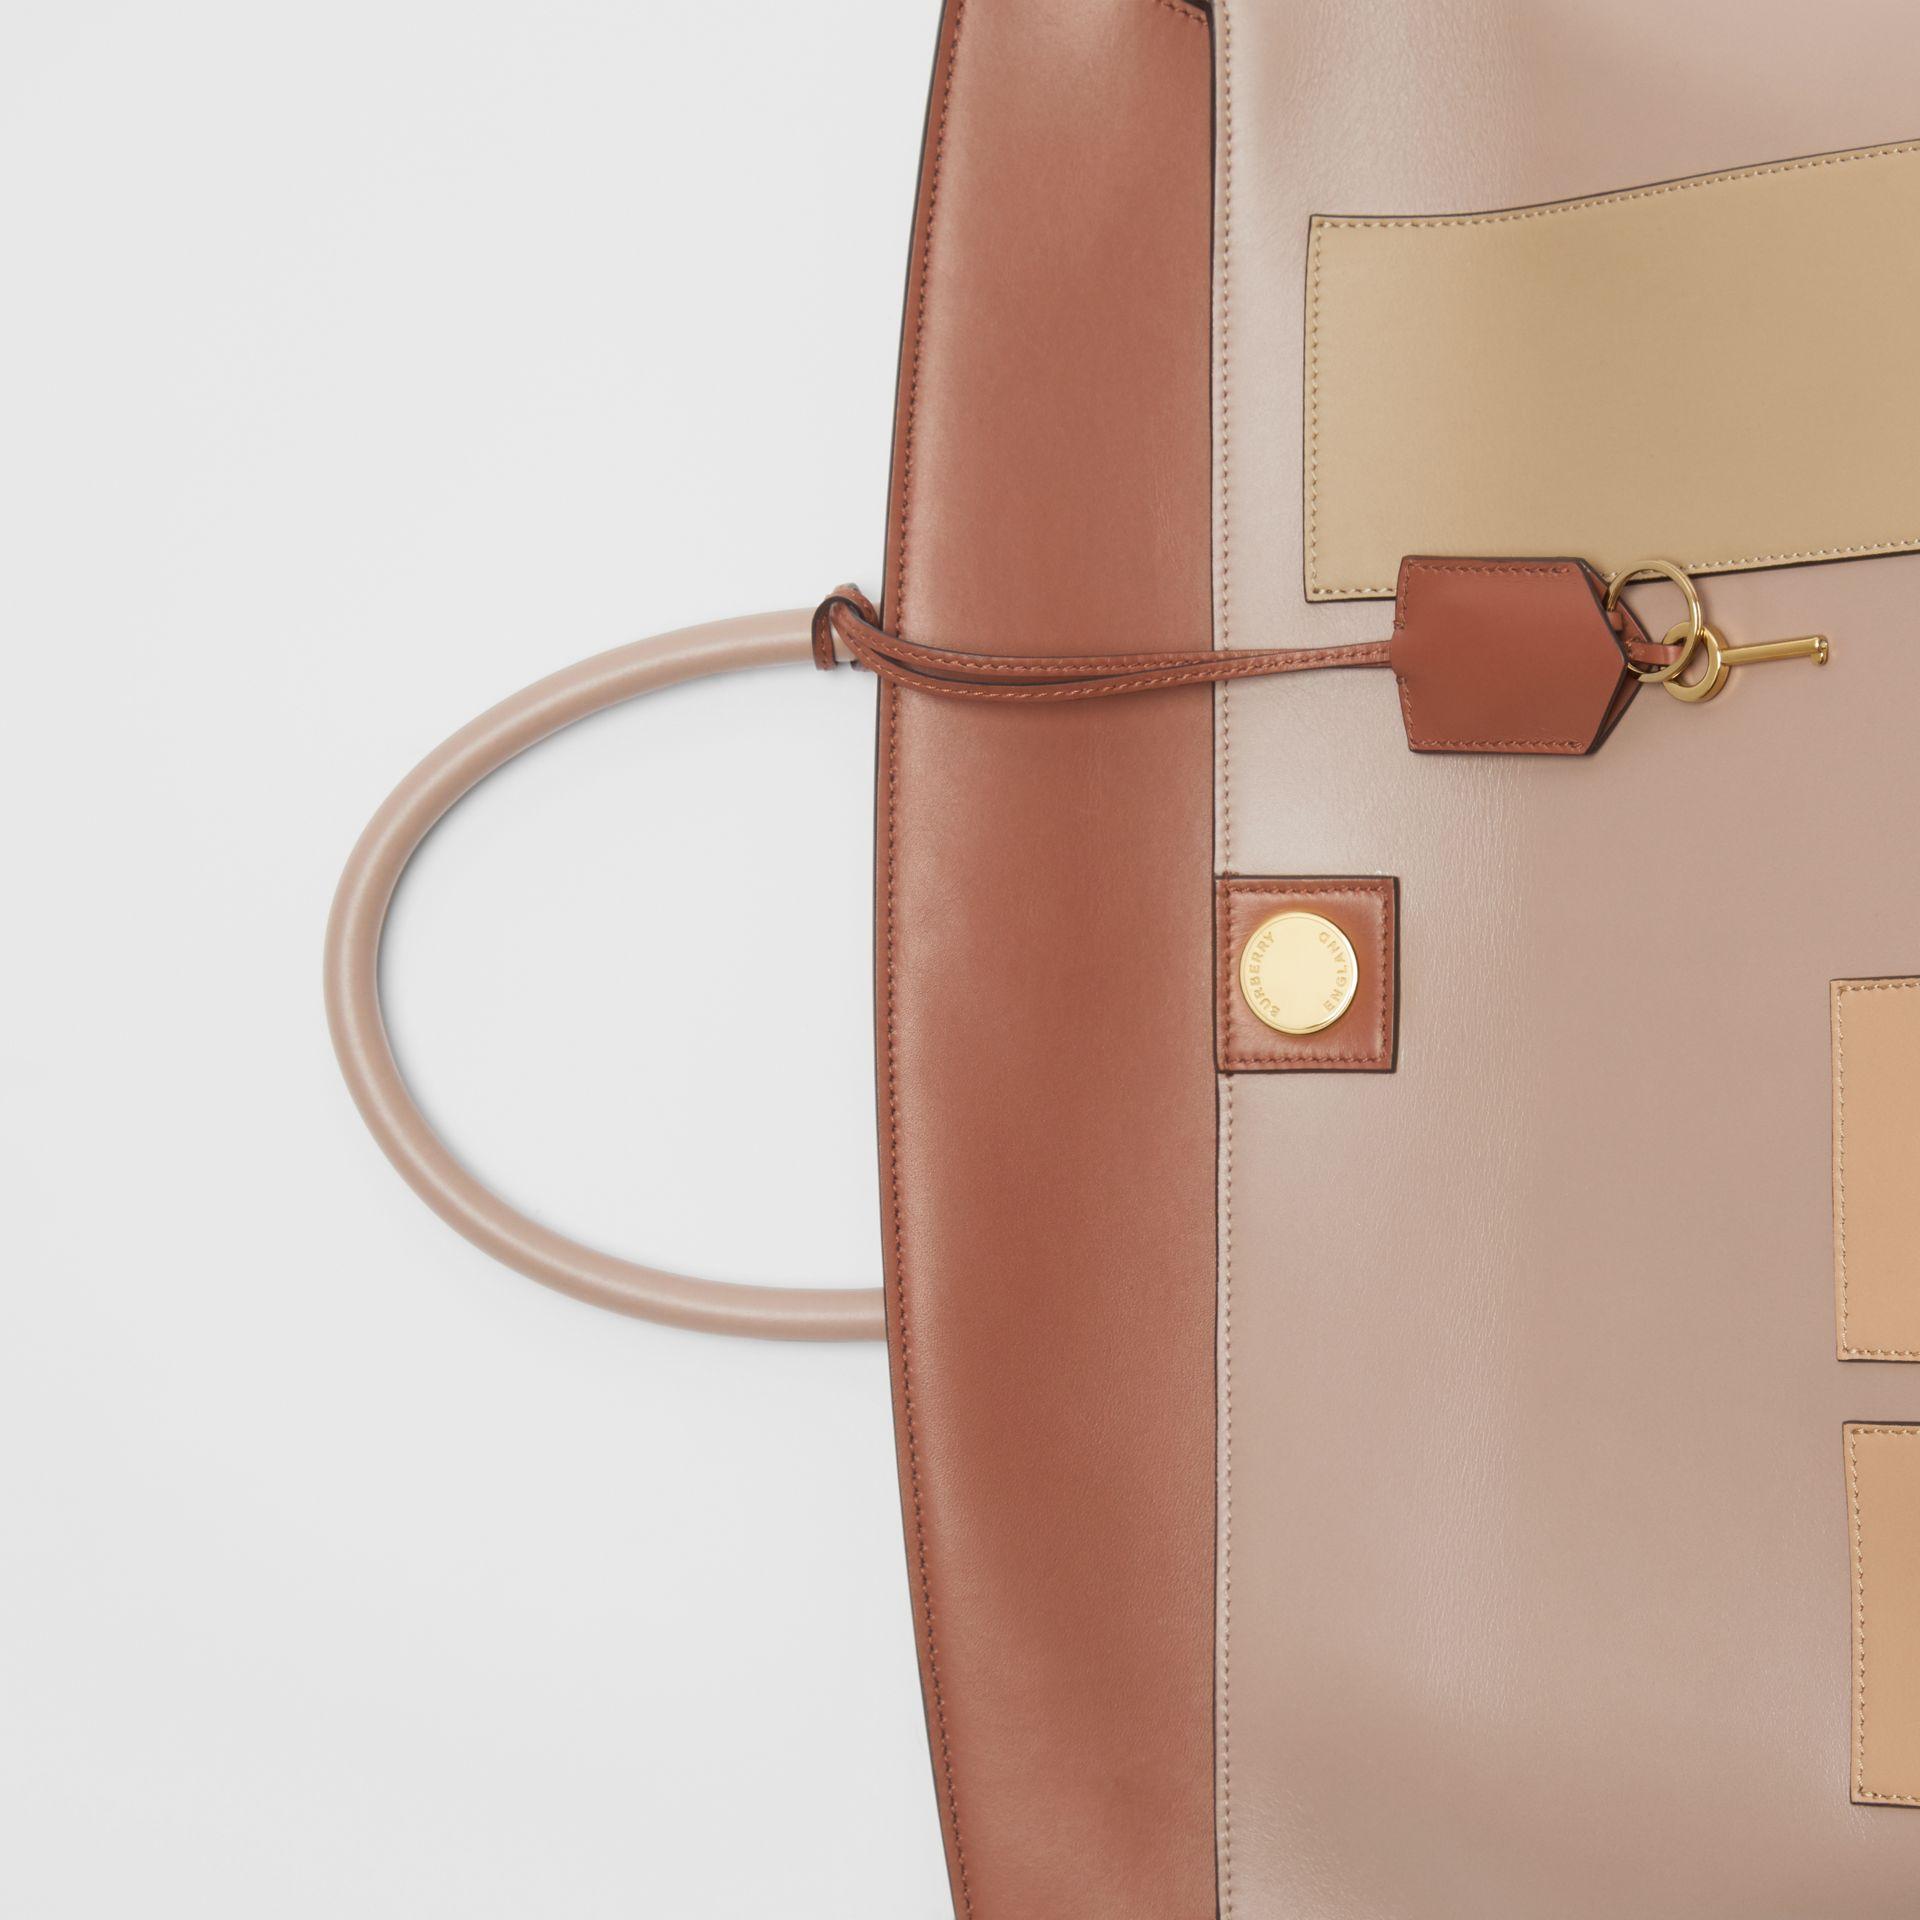 Leather Society Top Handle Bag in Pale Mink - Women | Burberry - gallery image 1